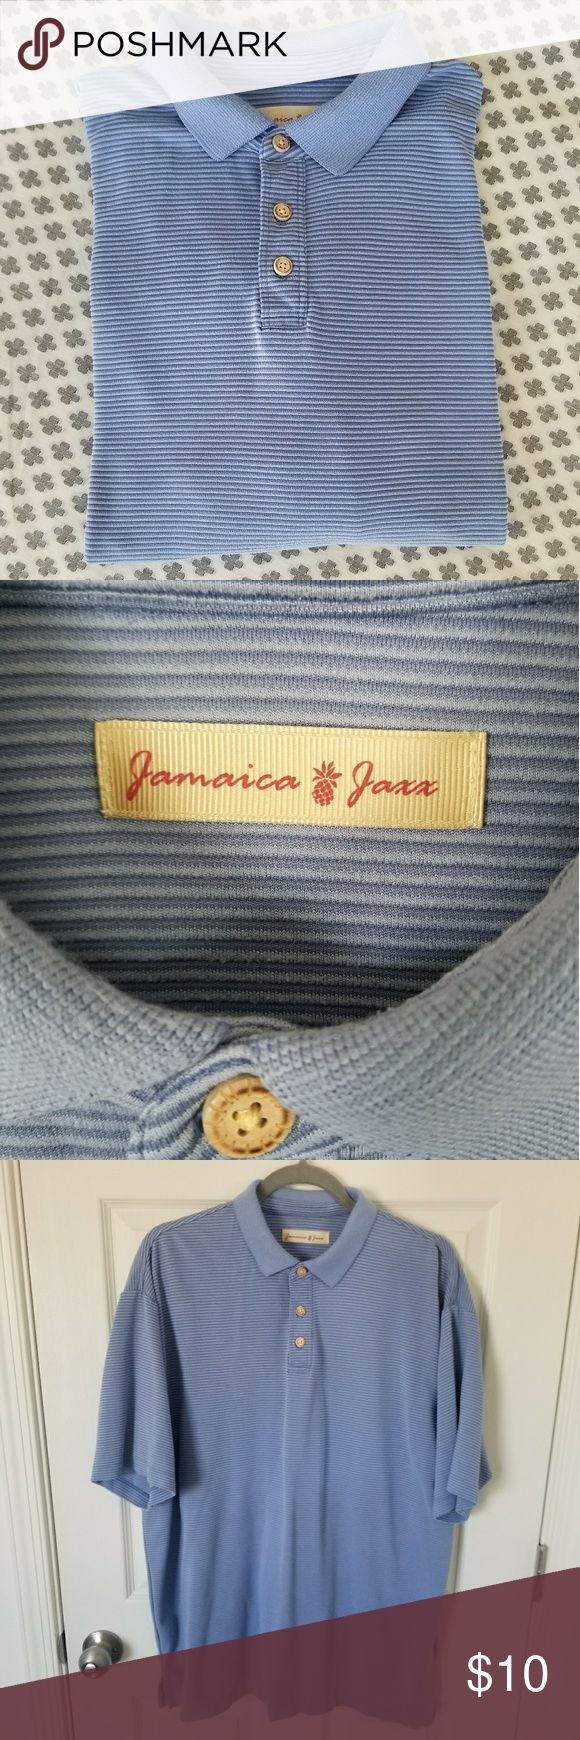 ❄SALE❄Jamaica Jaxx Microstripe Polo Golf Shirt Blue color - Good used condition (slight bit of pilling on collar, as pictured). Lots of life left! Jamaica Jaxx Shirts Polos